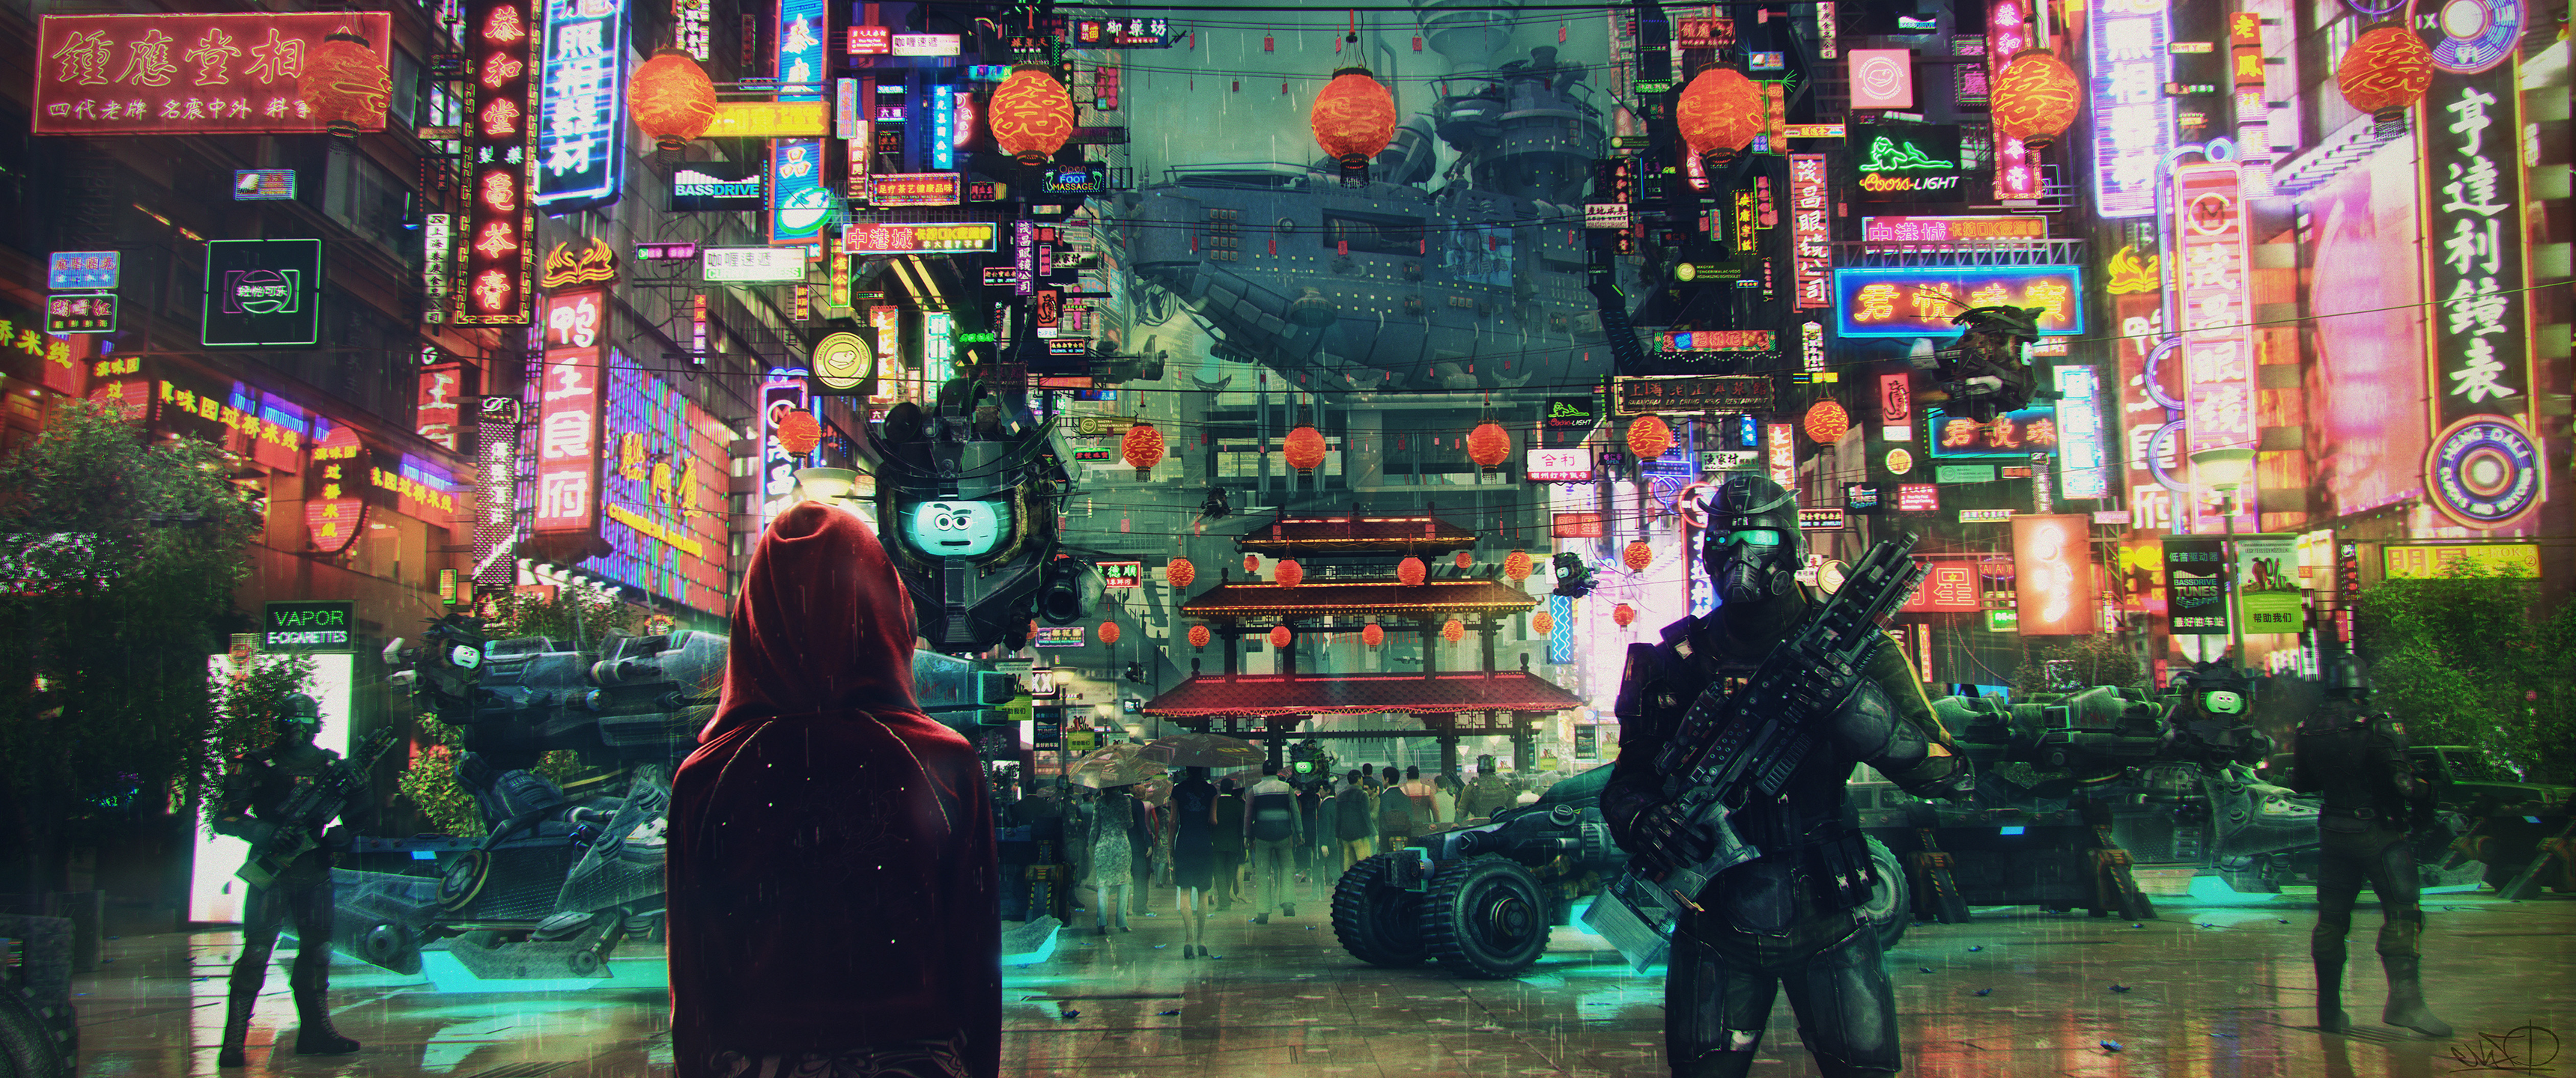 General 3440x1440 Science Fiction Cyberpunk Cityscape Soldier Asian Architecture Neon Lights Ultrawide Asian Architecture Cyberpunk City City Illustration